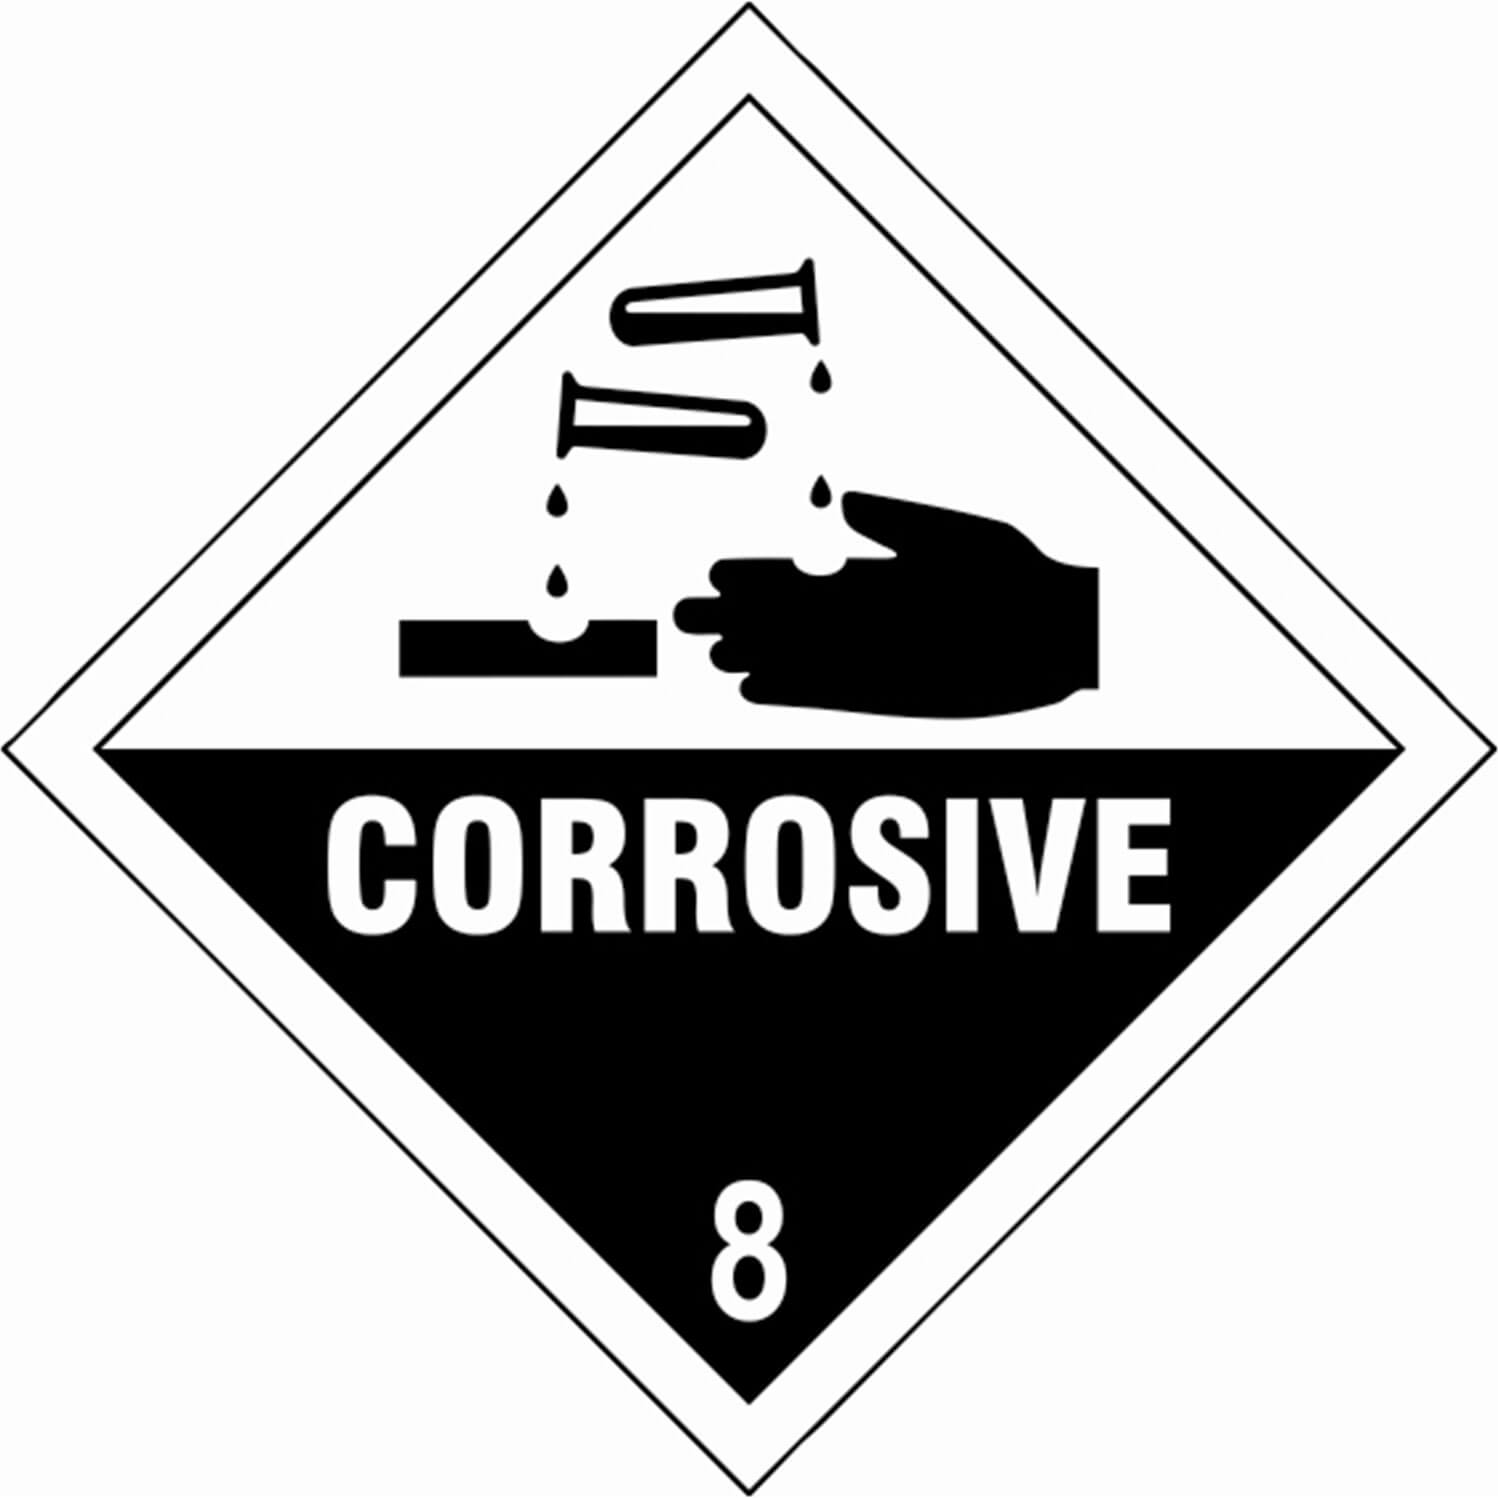 Tooled Up/Safety & Workwear/Safety/Scan 100 x 100mm SAV Diamond Sign - Corrosive 8